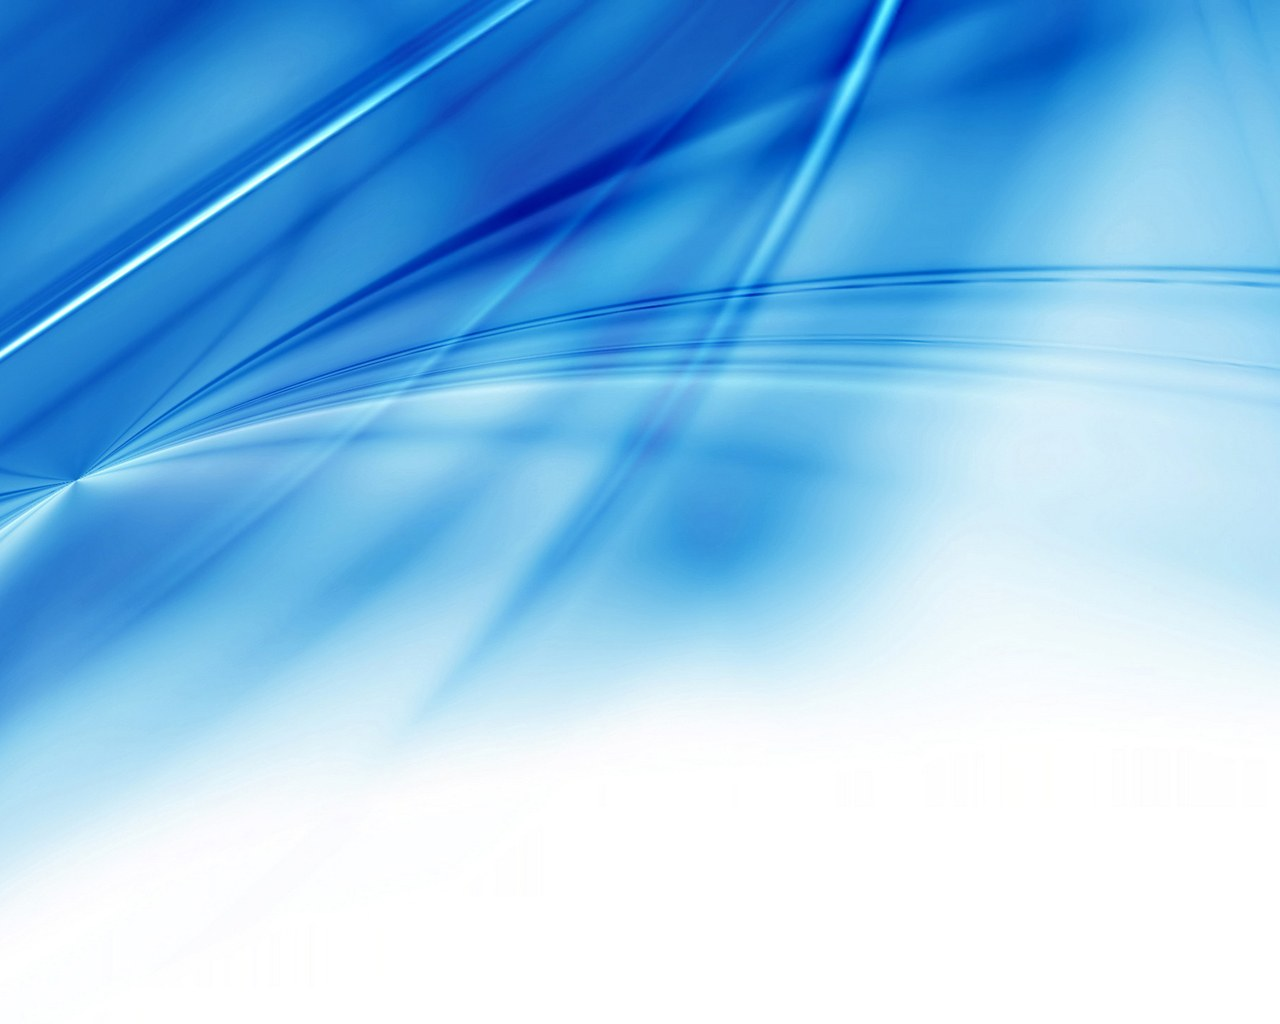 blue-background-wallpaper-13